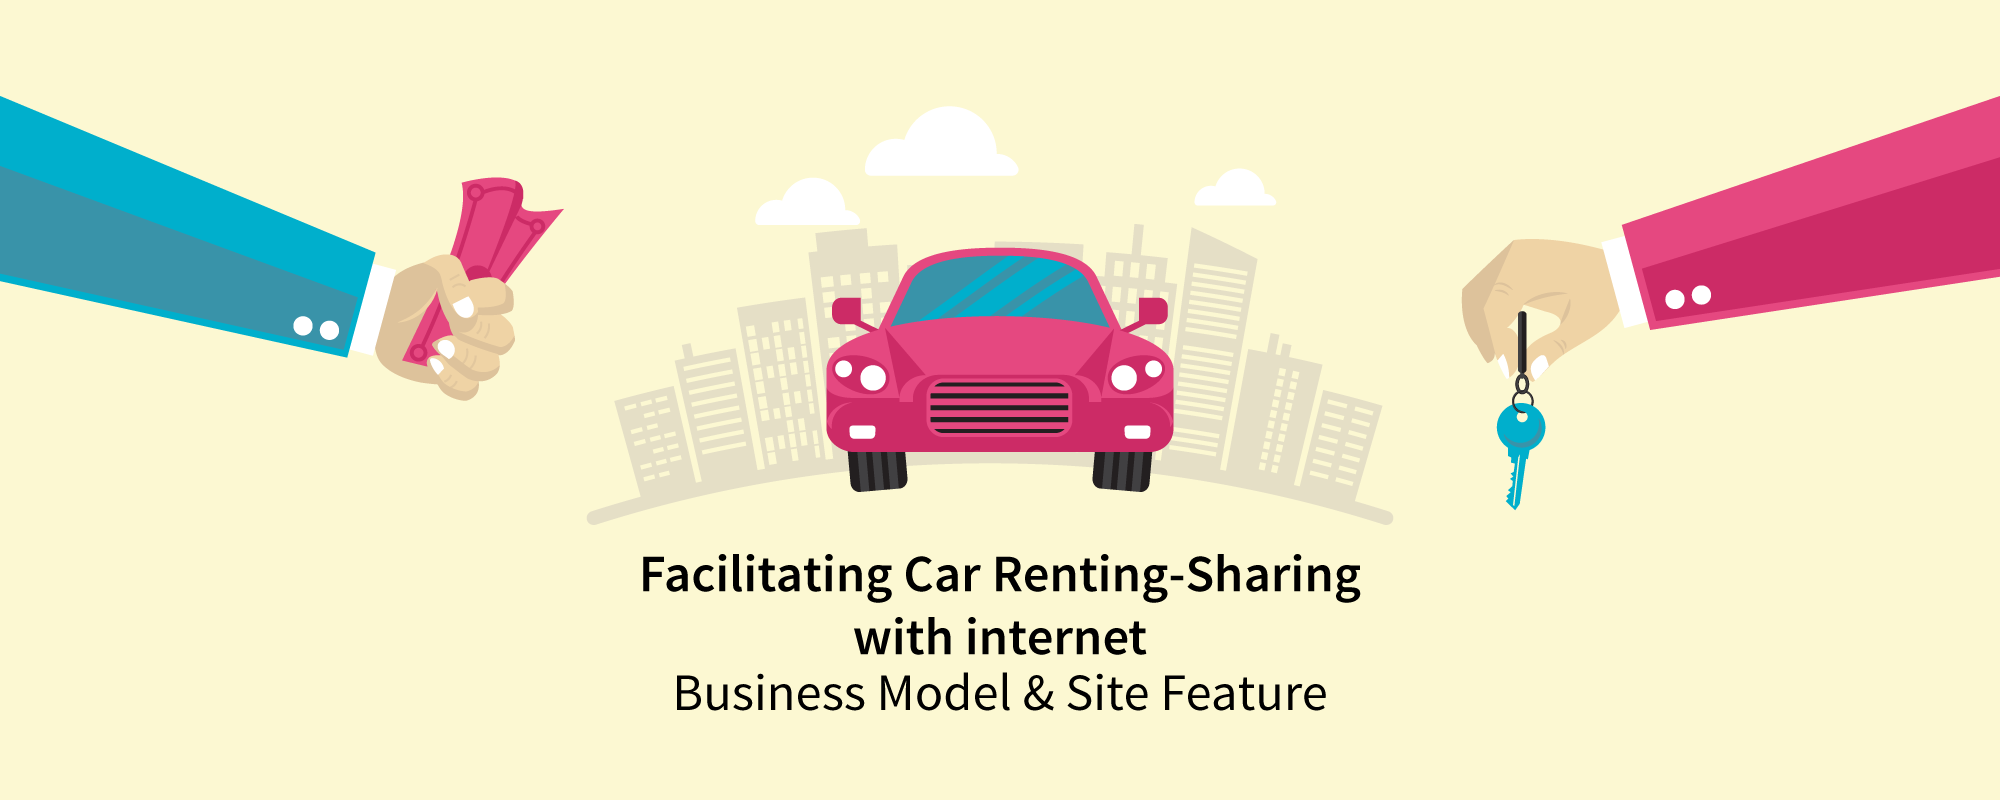 Planning to Launch An Online Car Rental Marketplace? Website/App Features to Succeed!